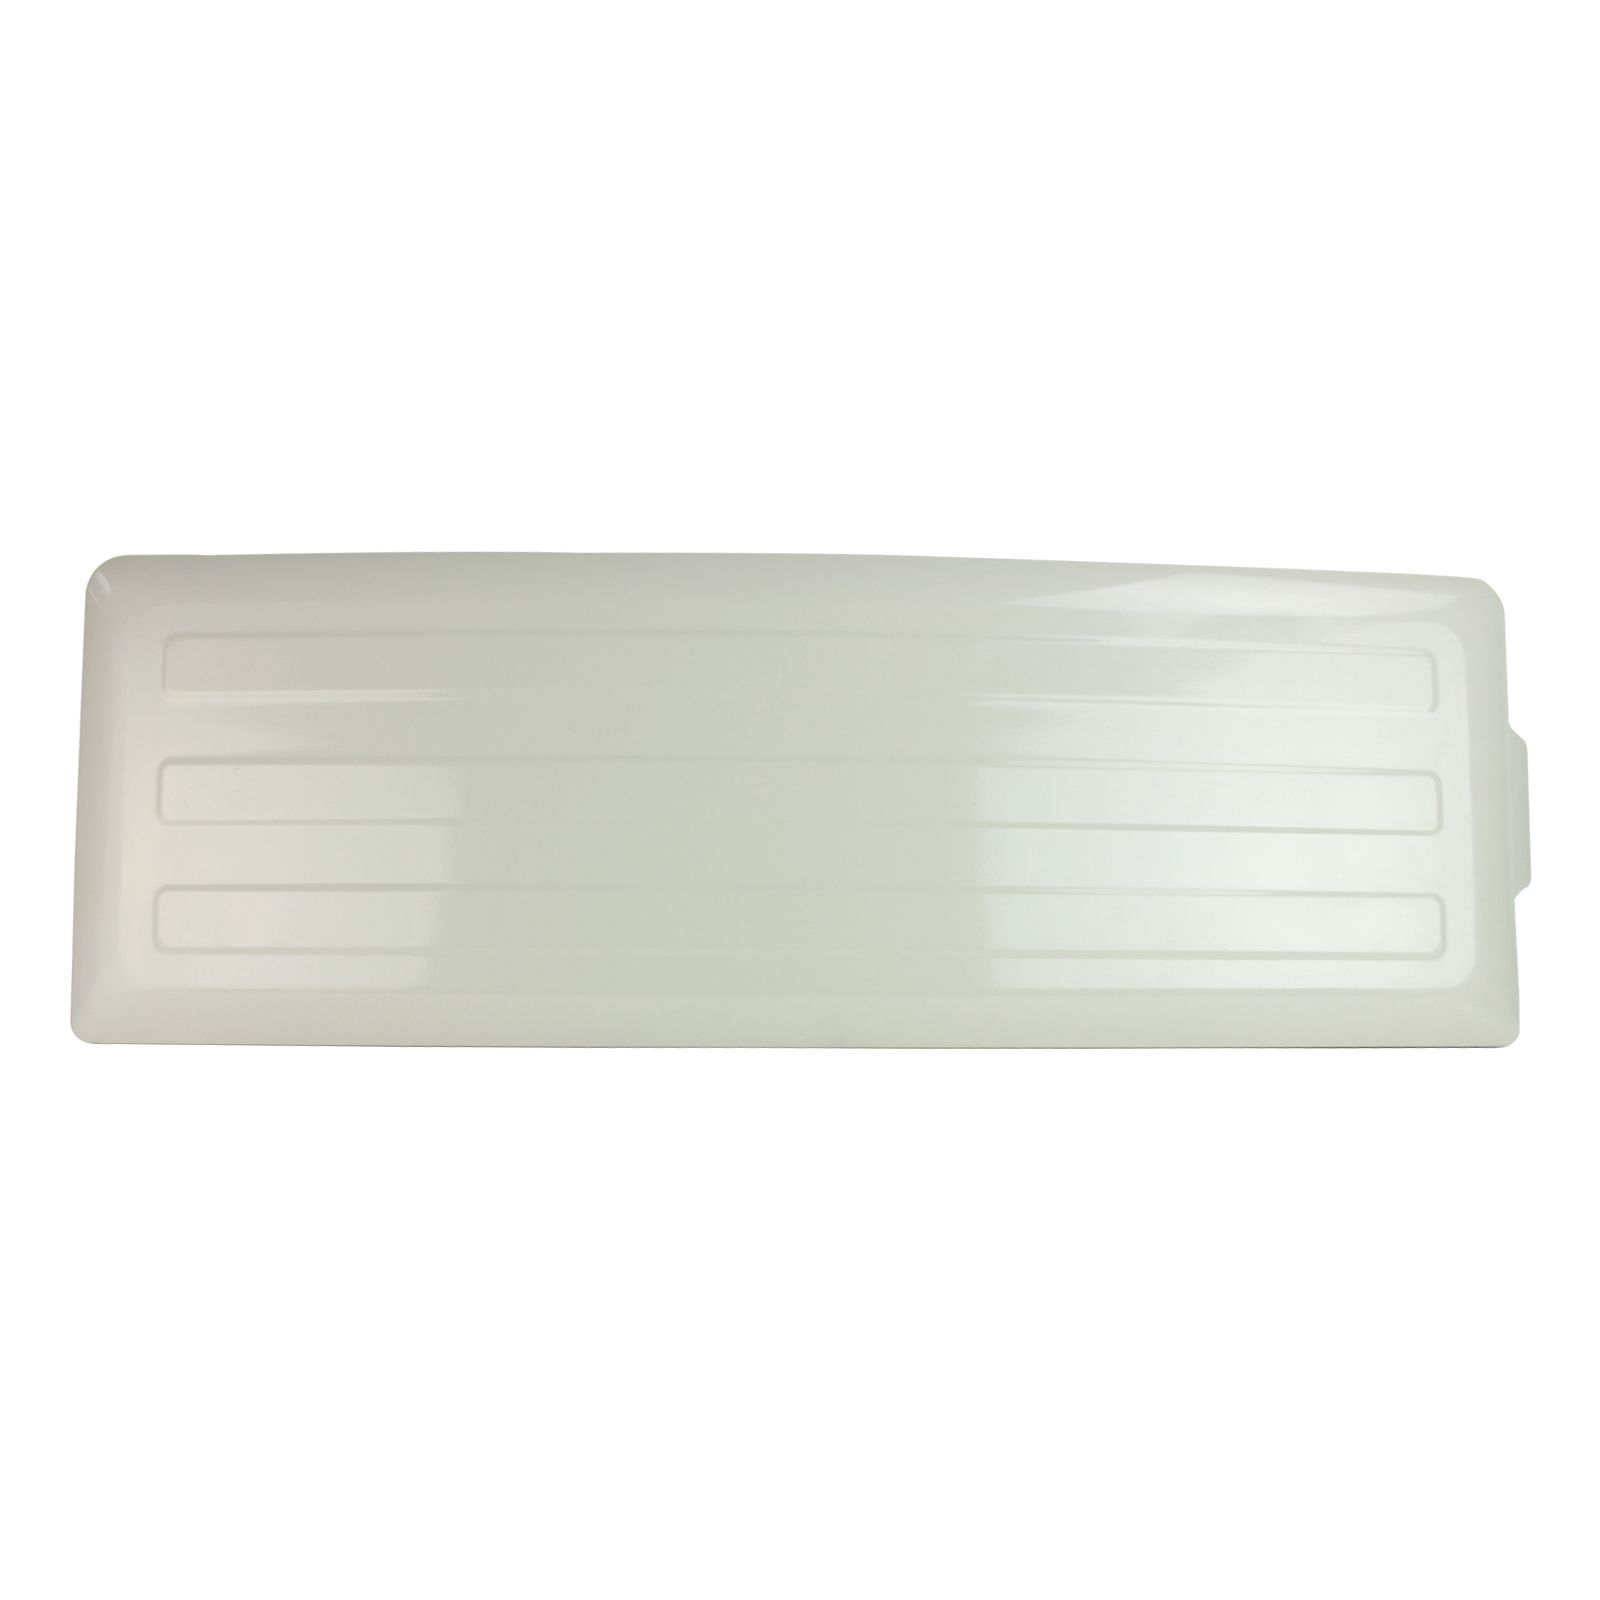 GREE 01253443 - Top Cover Plate